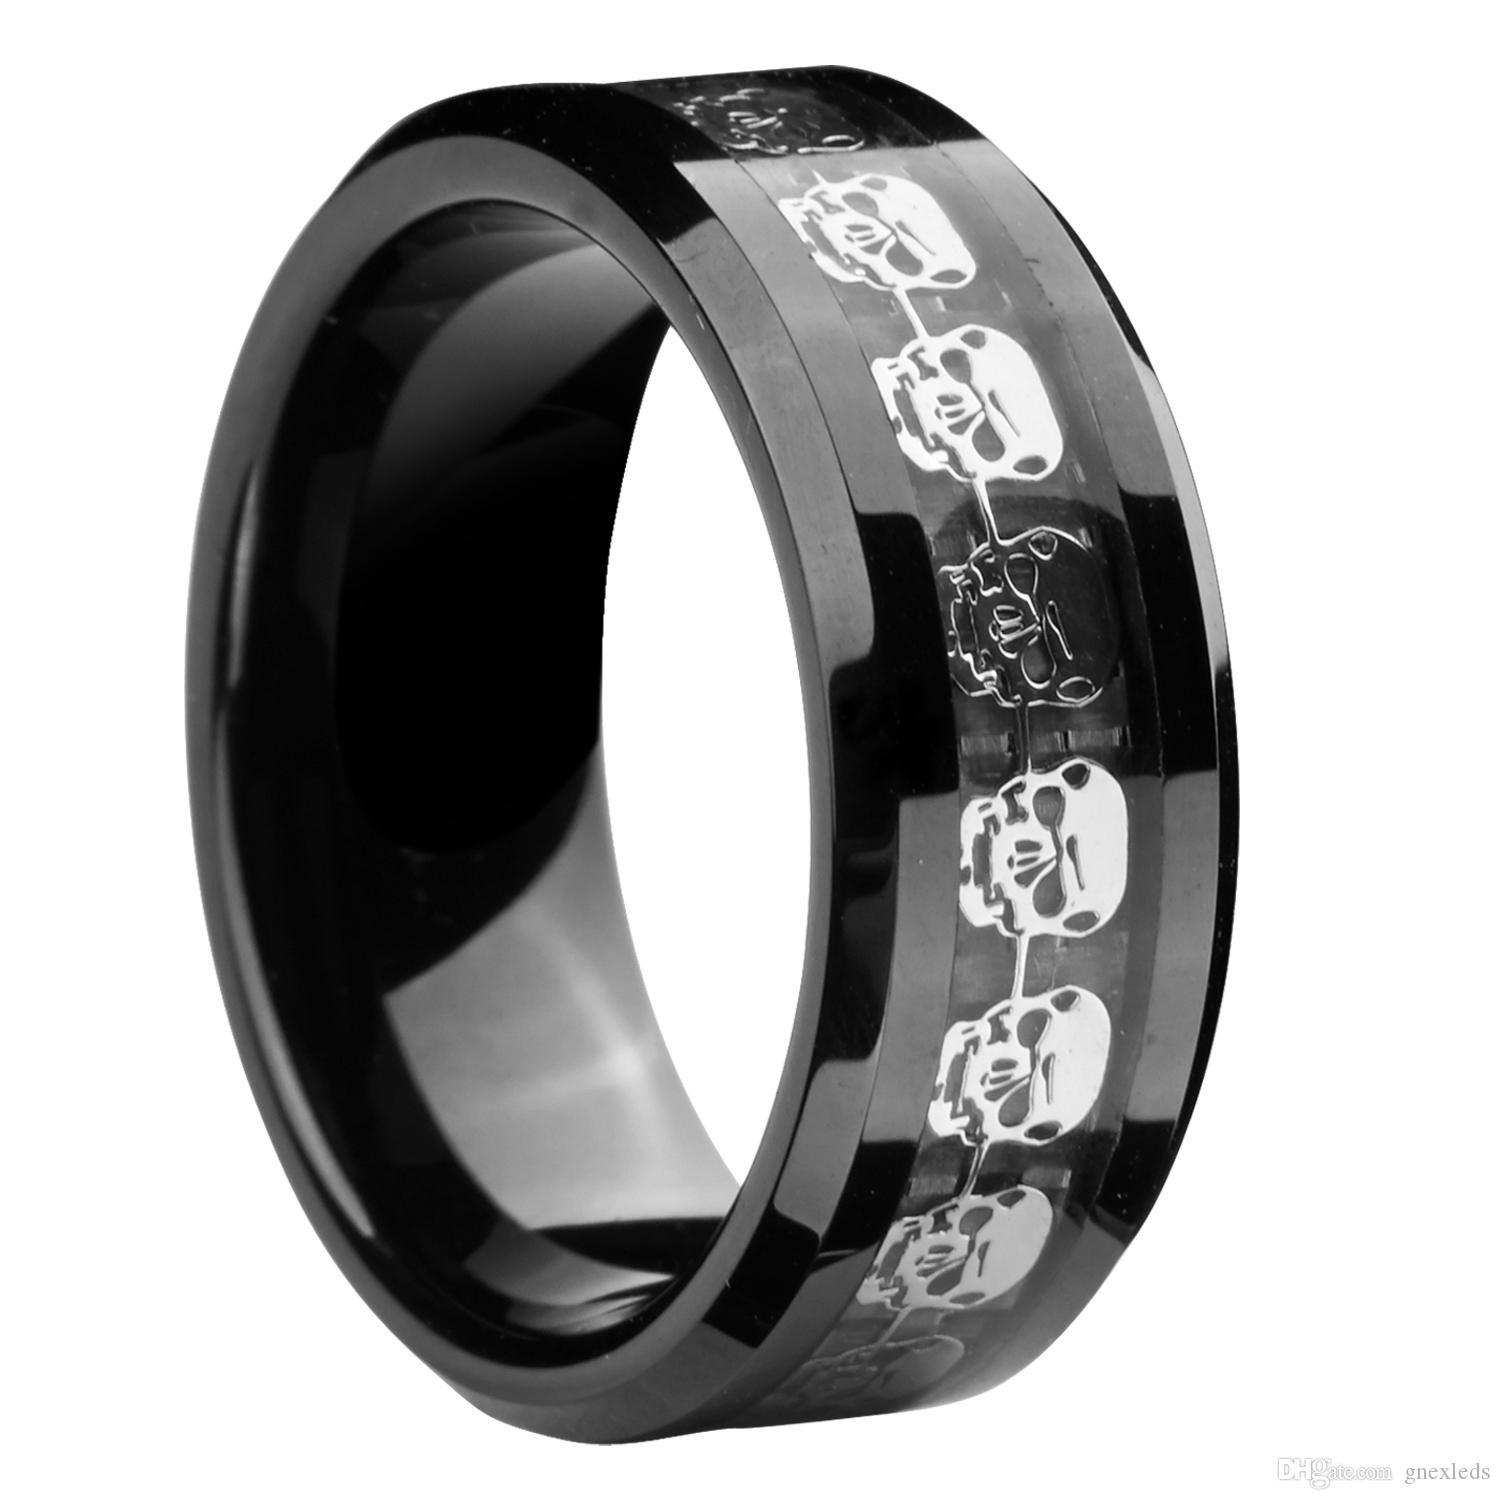 benchmark with tire band wedding men rings pattern for capri products by cobalt black tq tread